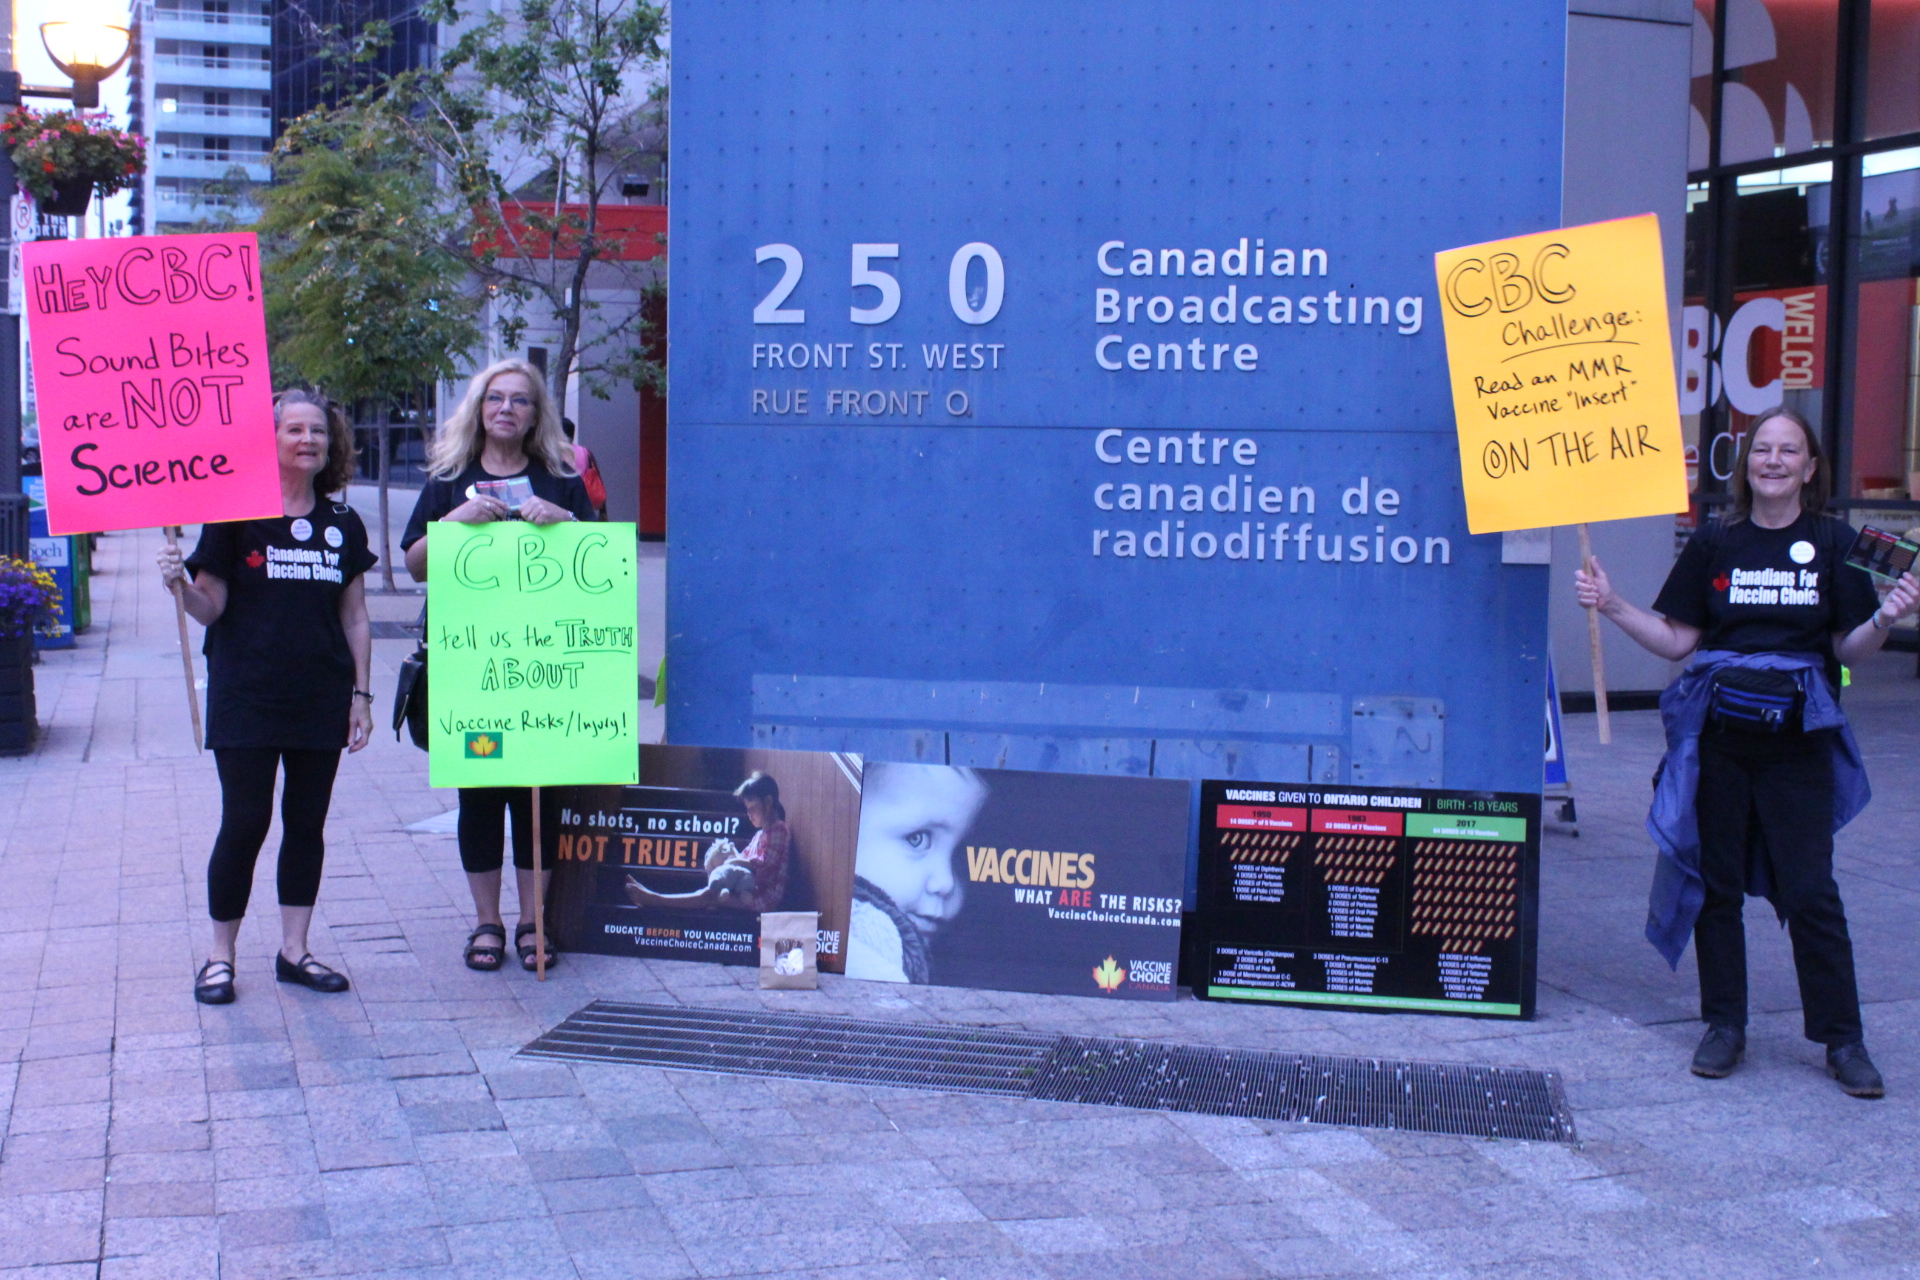 """Placards say, from left to right: Hey CBC. Sounds bites are not science; CBC: Tell us the truth about vaccine risks/injury; CBC Challenge: Read an MMR """"insert"""" on the air."""